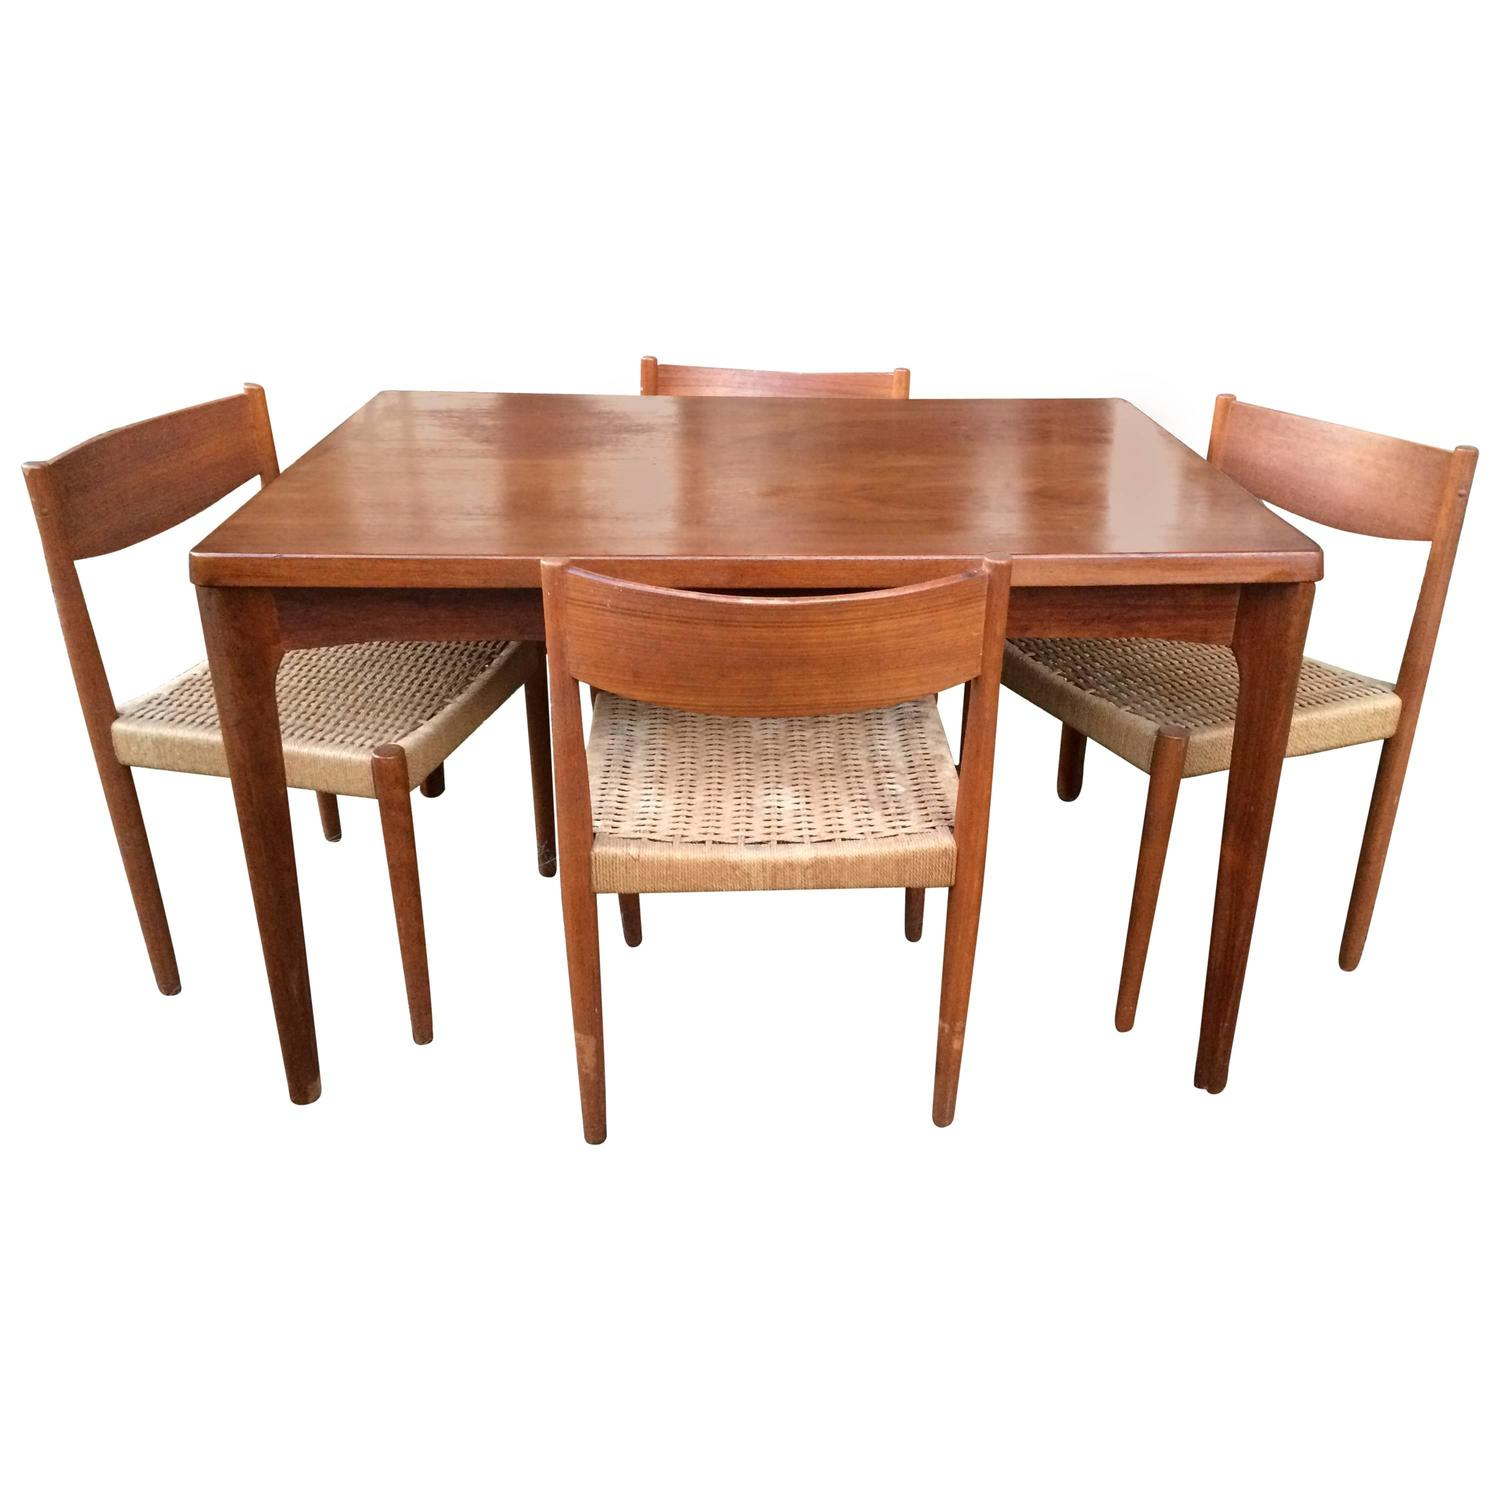 Teak Dining Room Table And Chairs: Danish Modern Extendable Teak Dining Table With Woven